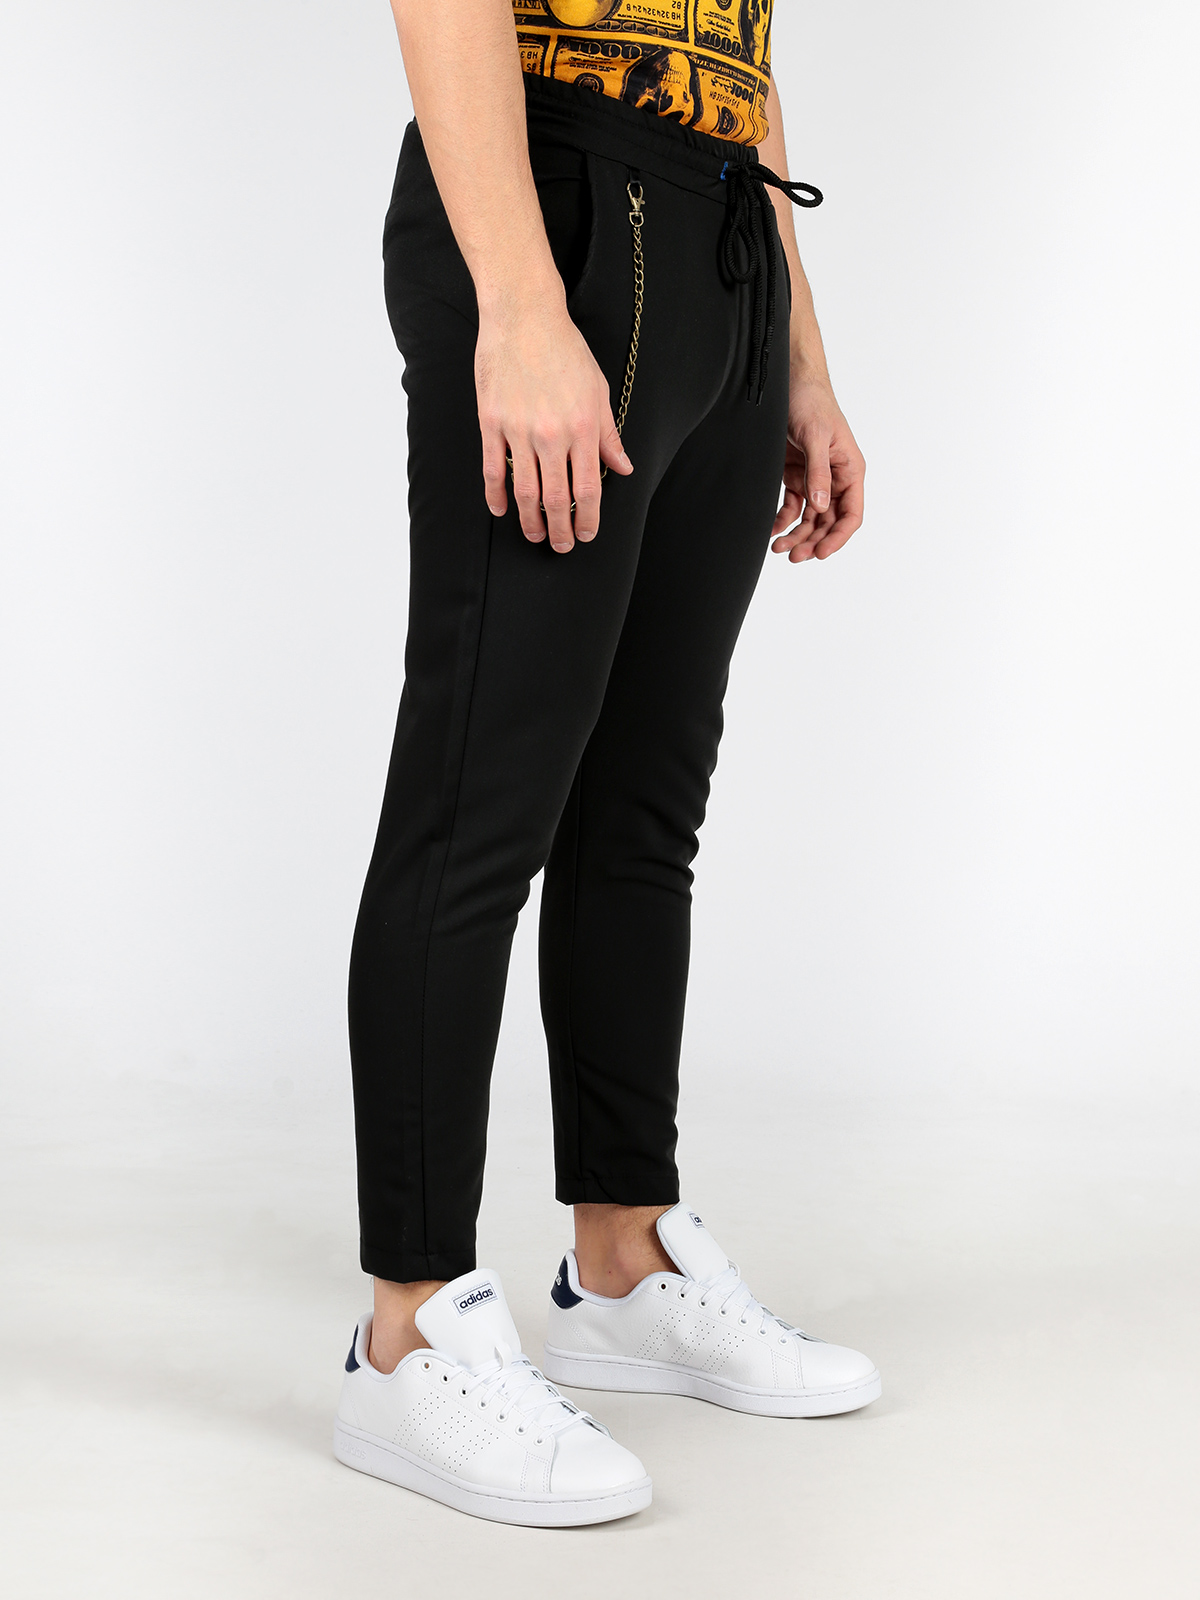 Black Pants With Chain